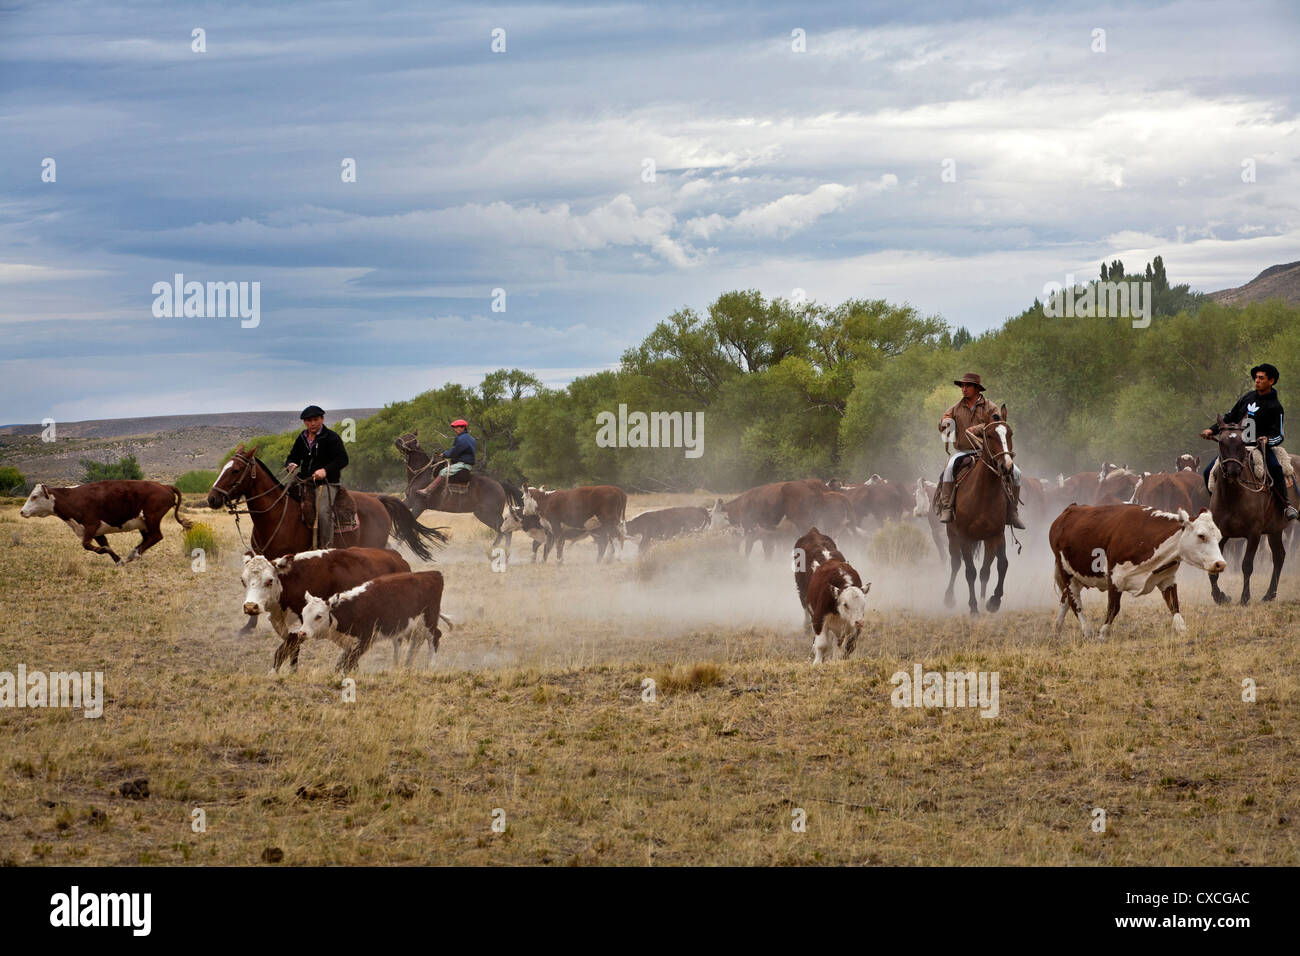 Gauchos with cattle at the Huechahue Estancia, Patagonia, Argentina. - Stock Image